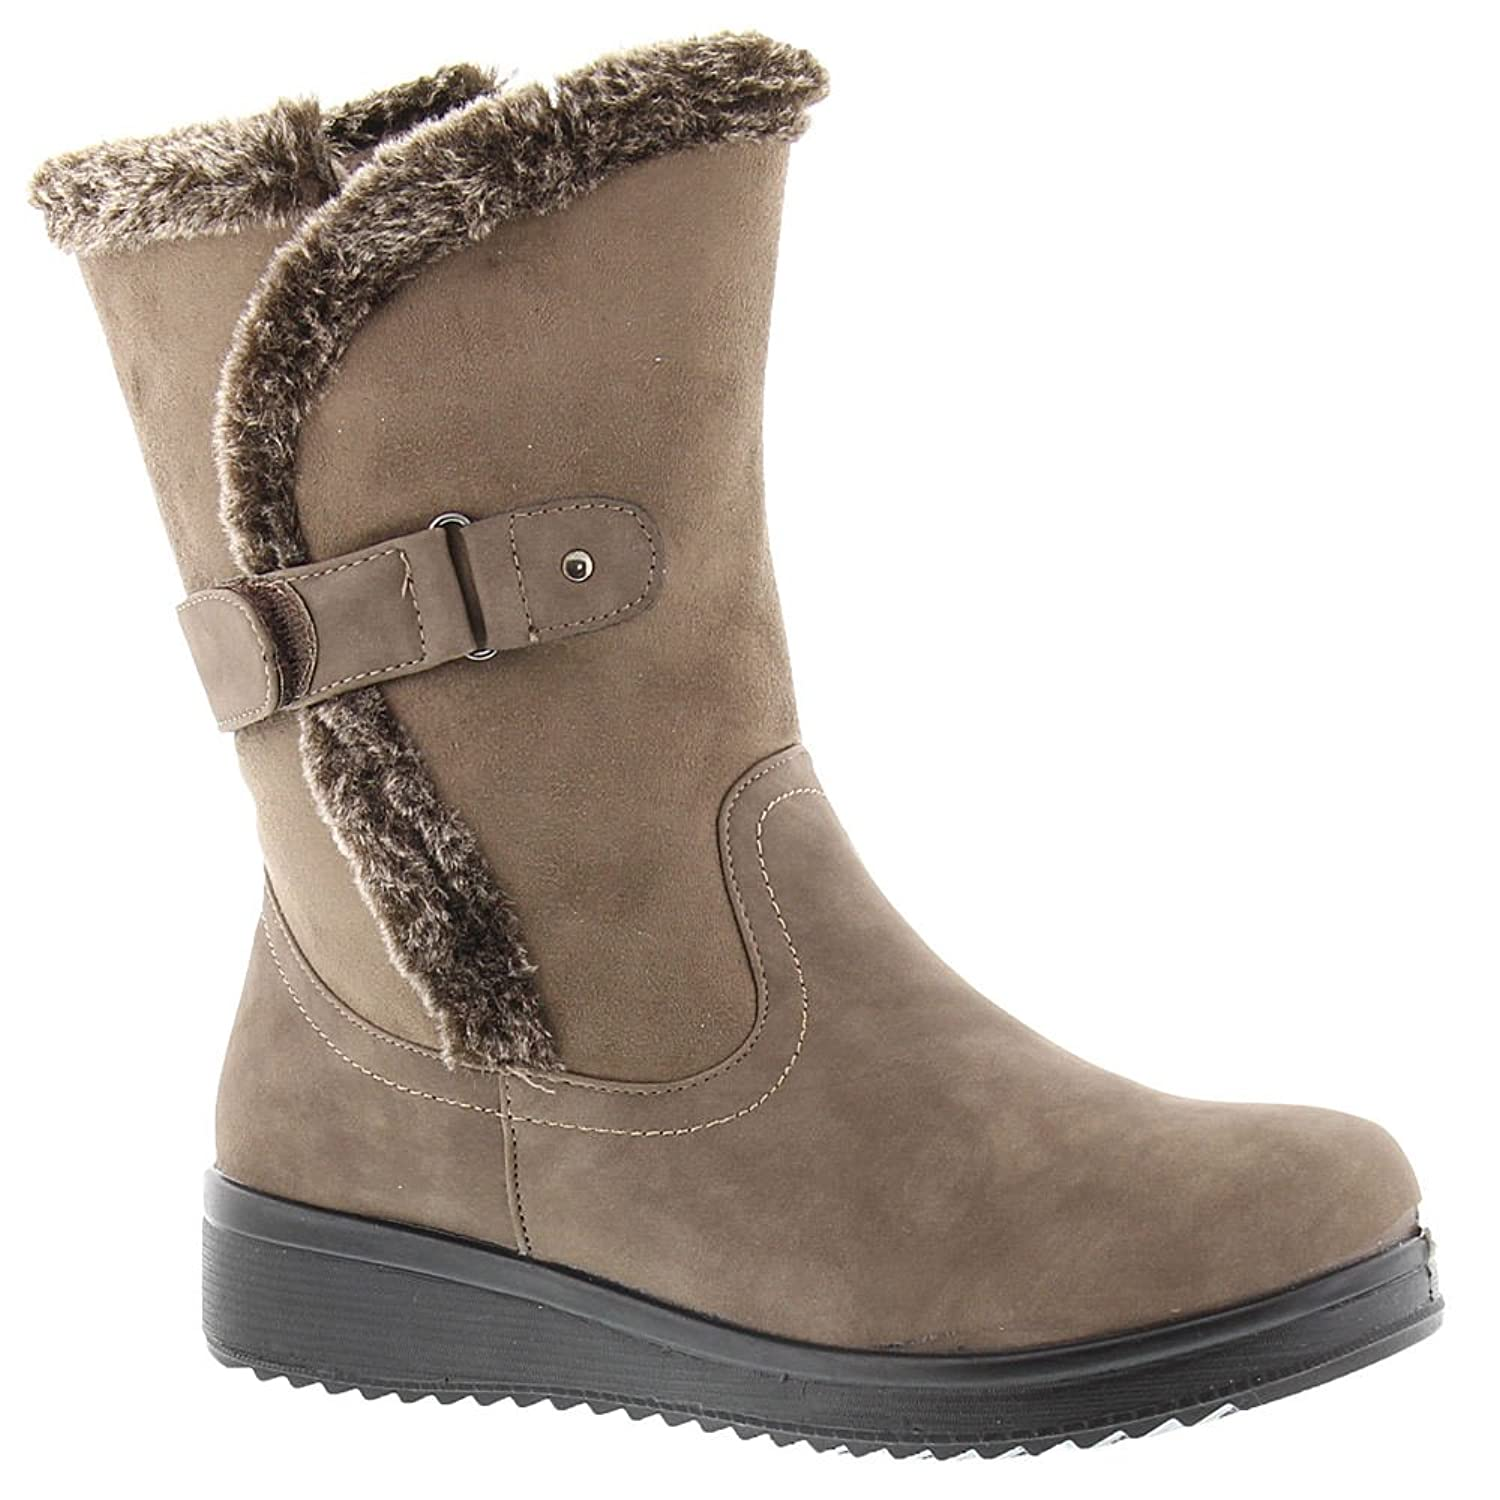 Patrizia Buzzard Women's Boot